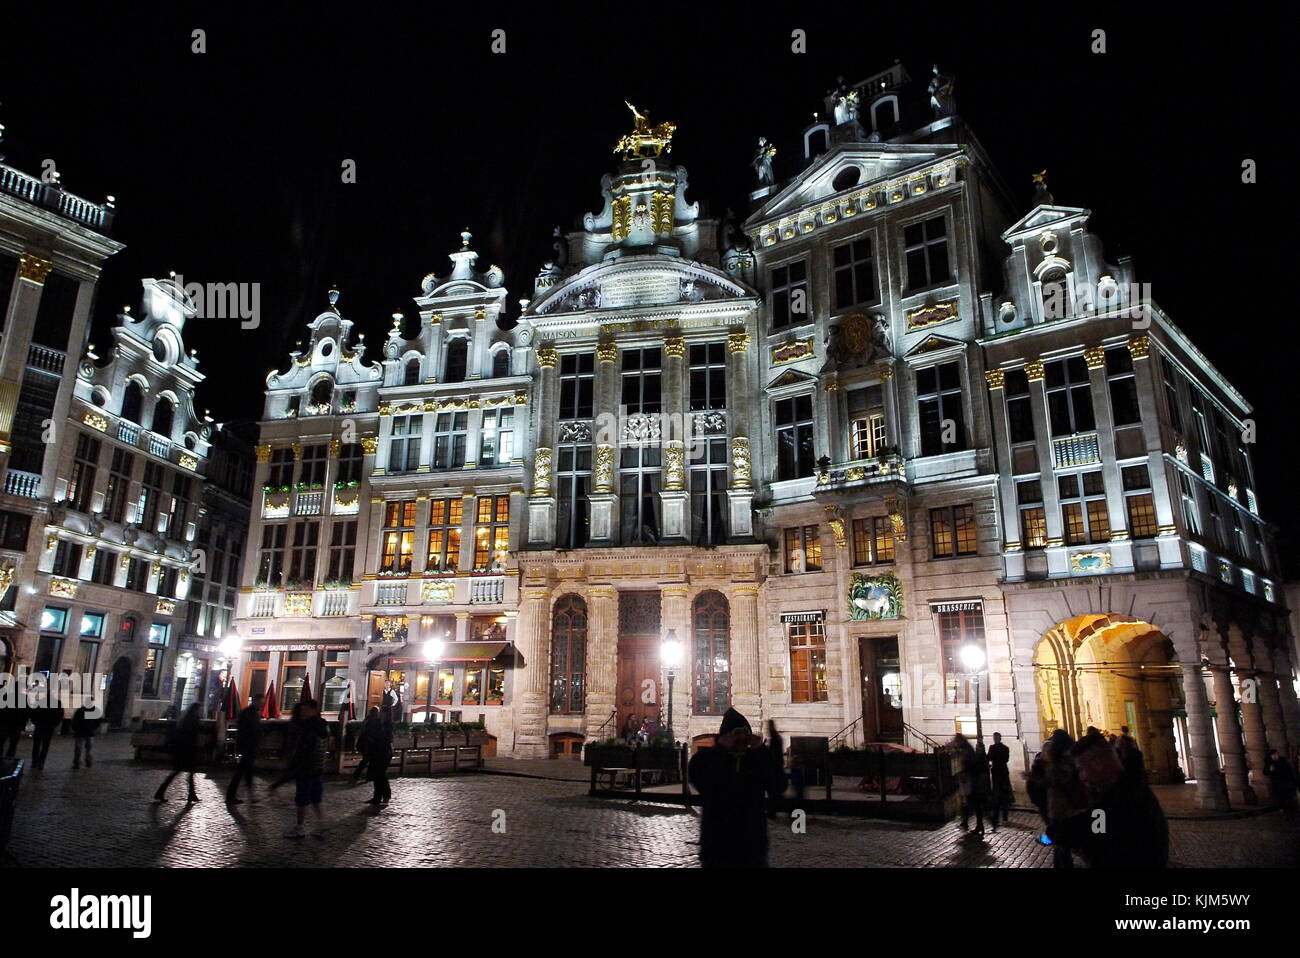 Nightl view of Grote Markt - Grand-Place - central square of, Brussels, Belgium - Stock Image